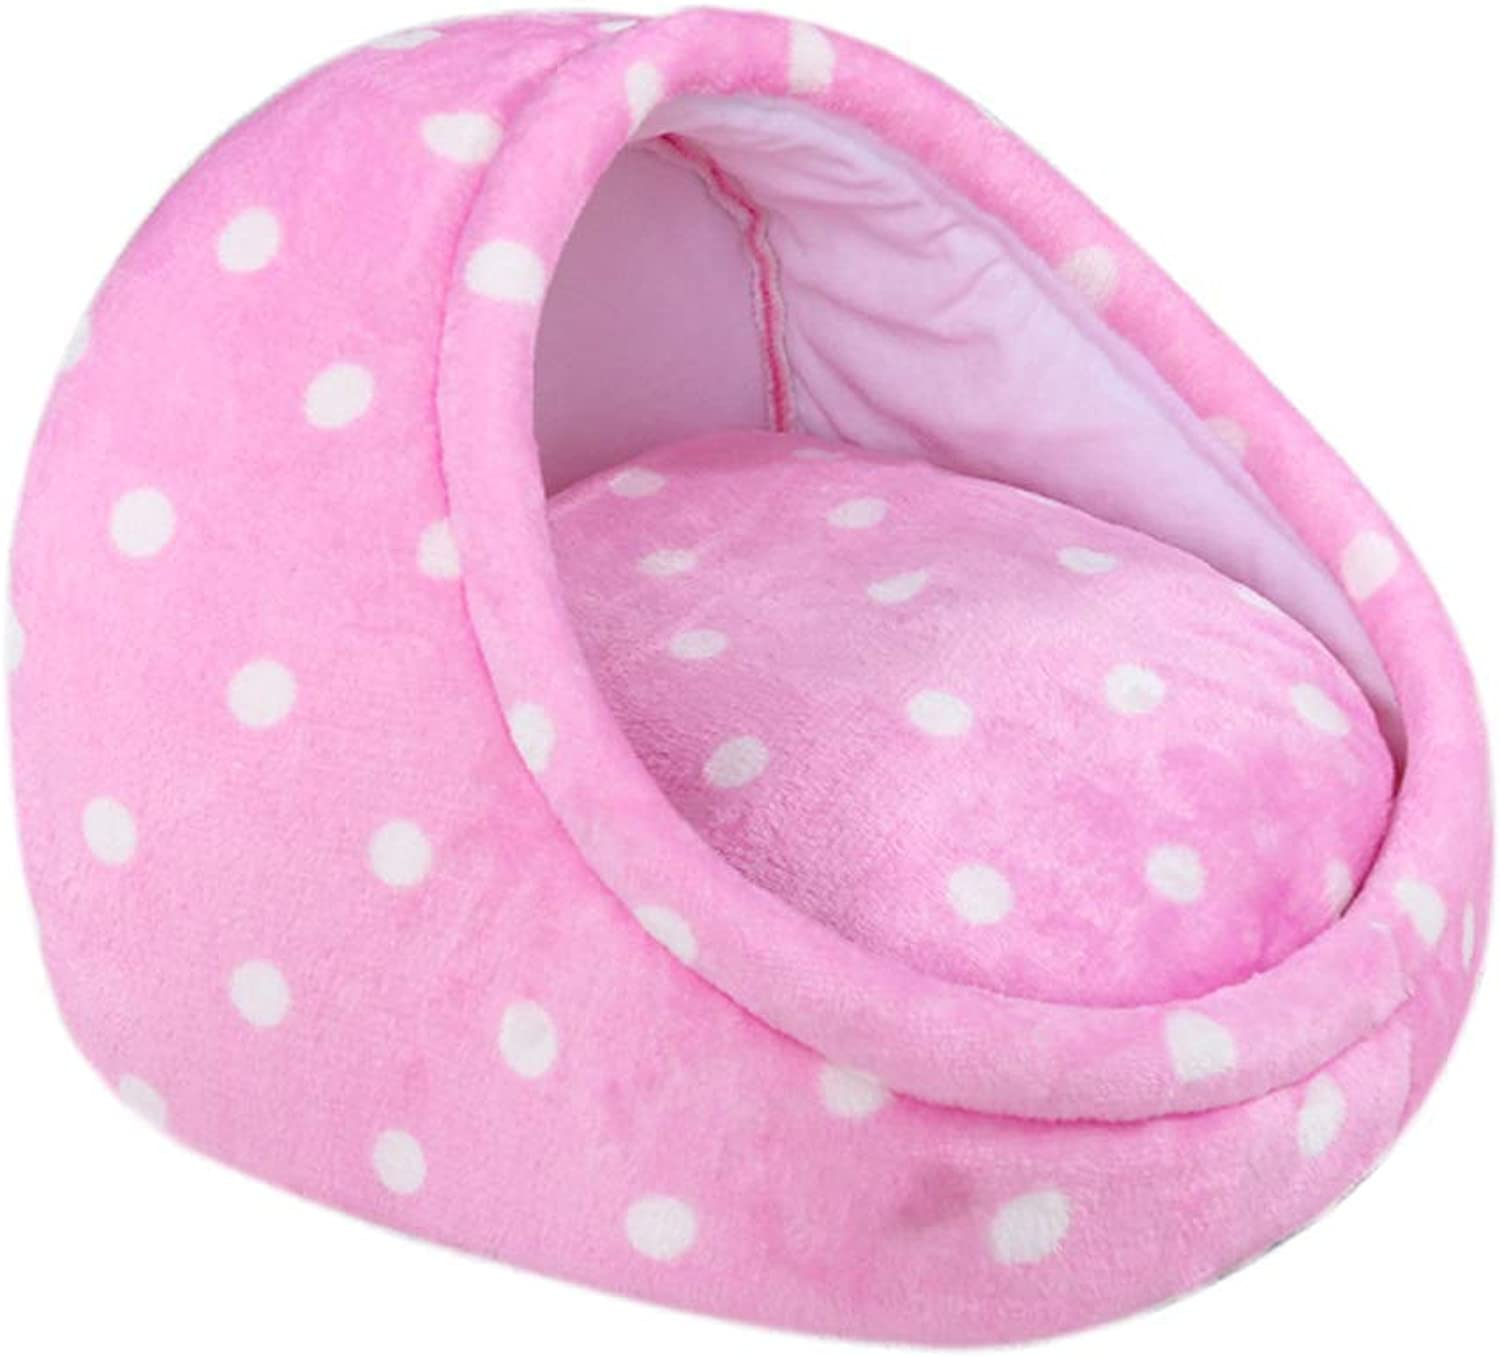 Pet Bed Pet Bed Winter Warm and Washable Pet Nest Four Seasons Universal Small and Medium Dog Cat Rebound Sponge Mat 2 color Optional (color   Pink, Size   Small)